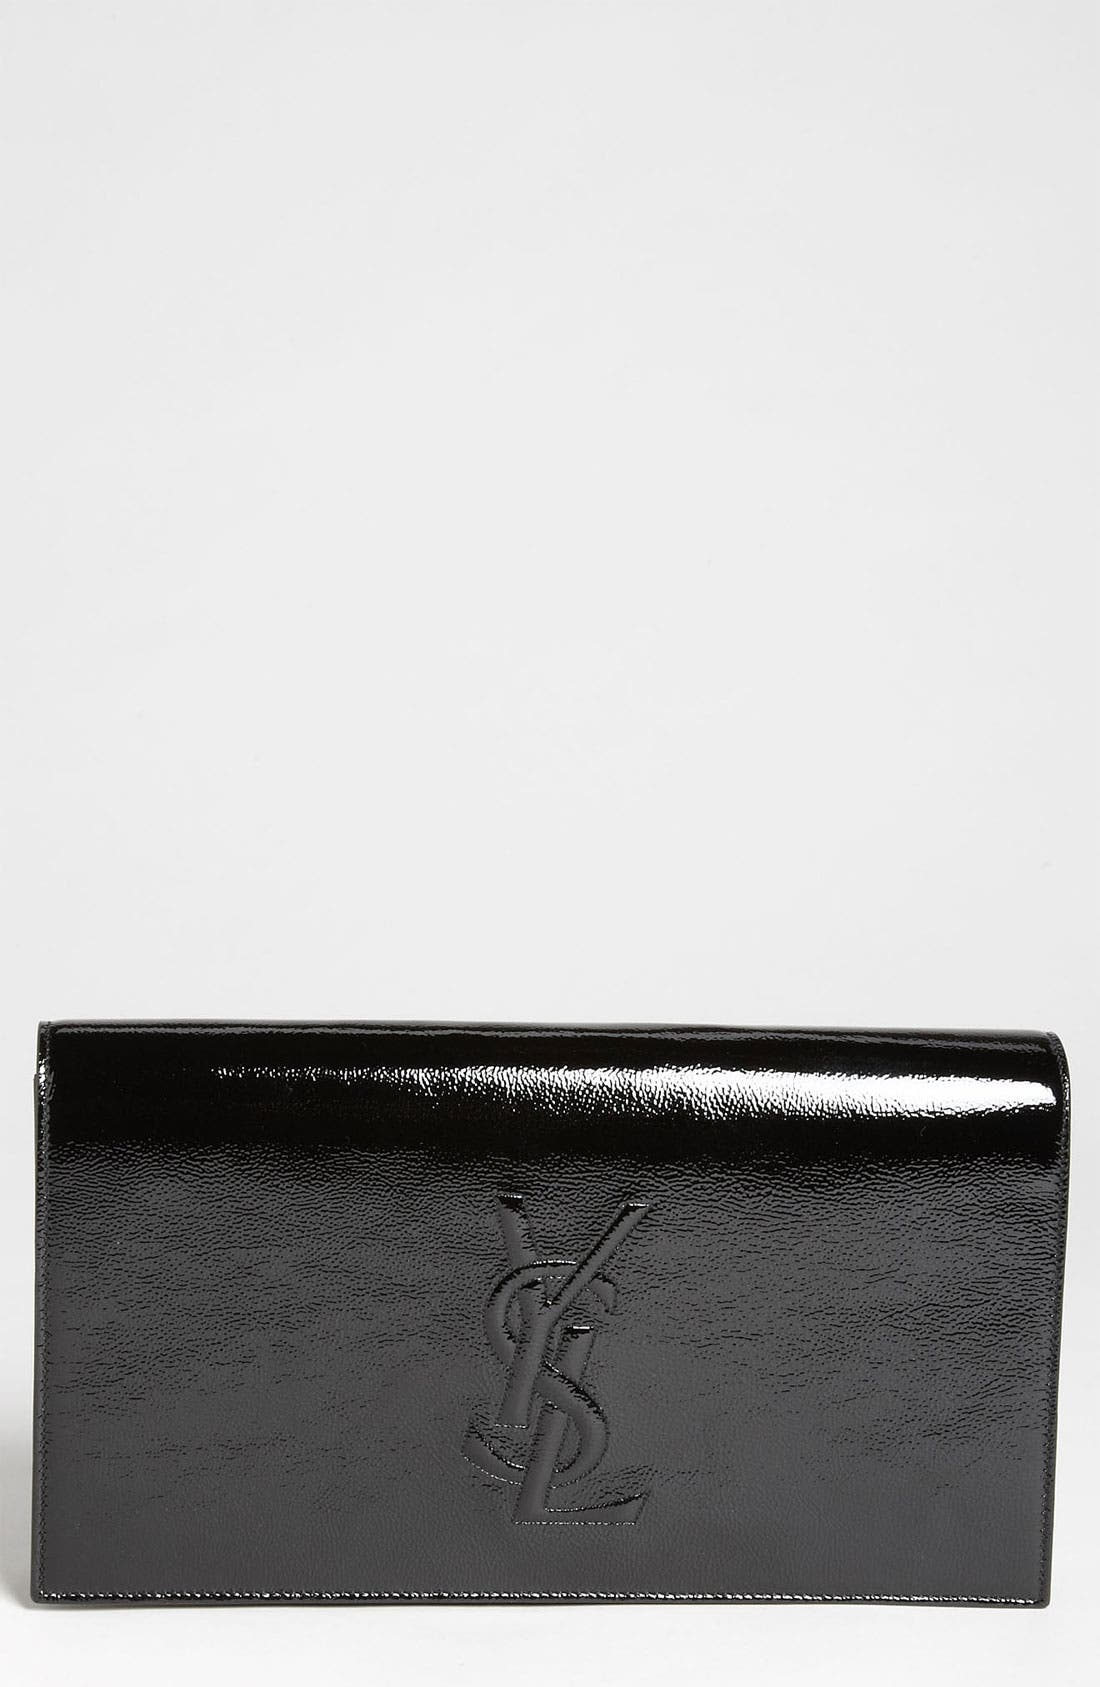 Main Image - Saint Laurent 'Belle de Jour' Patent Leather Clutch